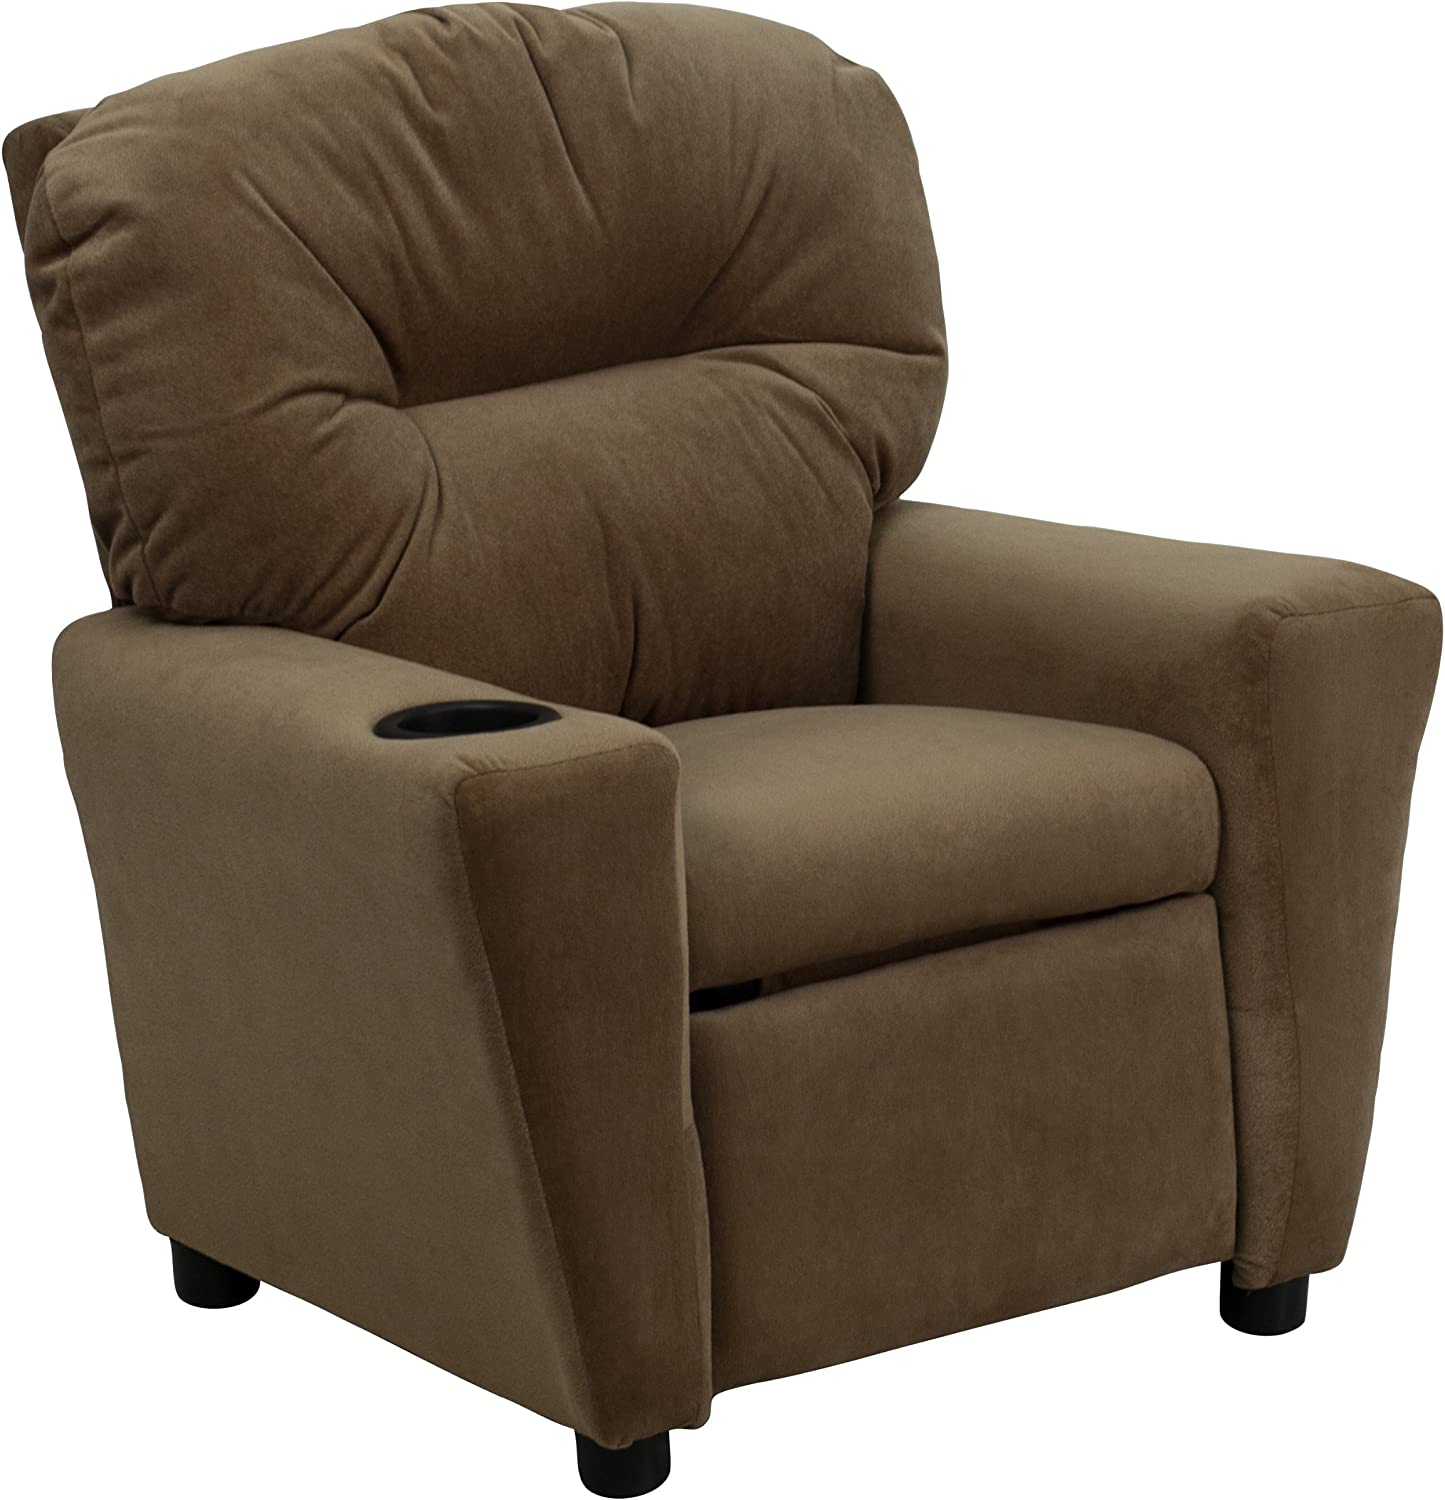 Top 10 Best Kids Recliner (2020 Reviews & Buying Guide) 4